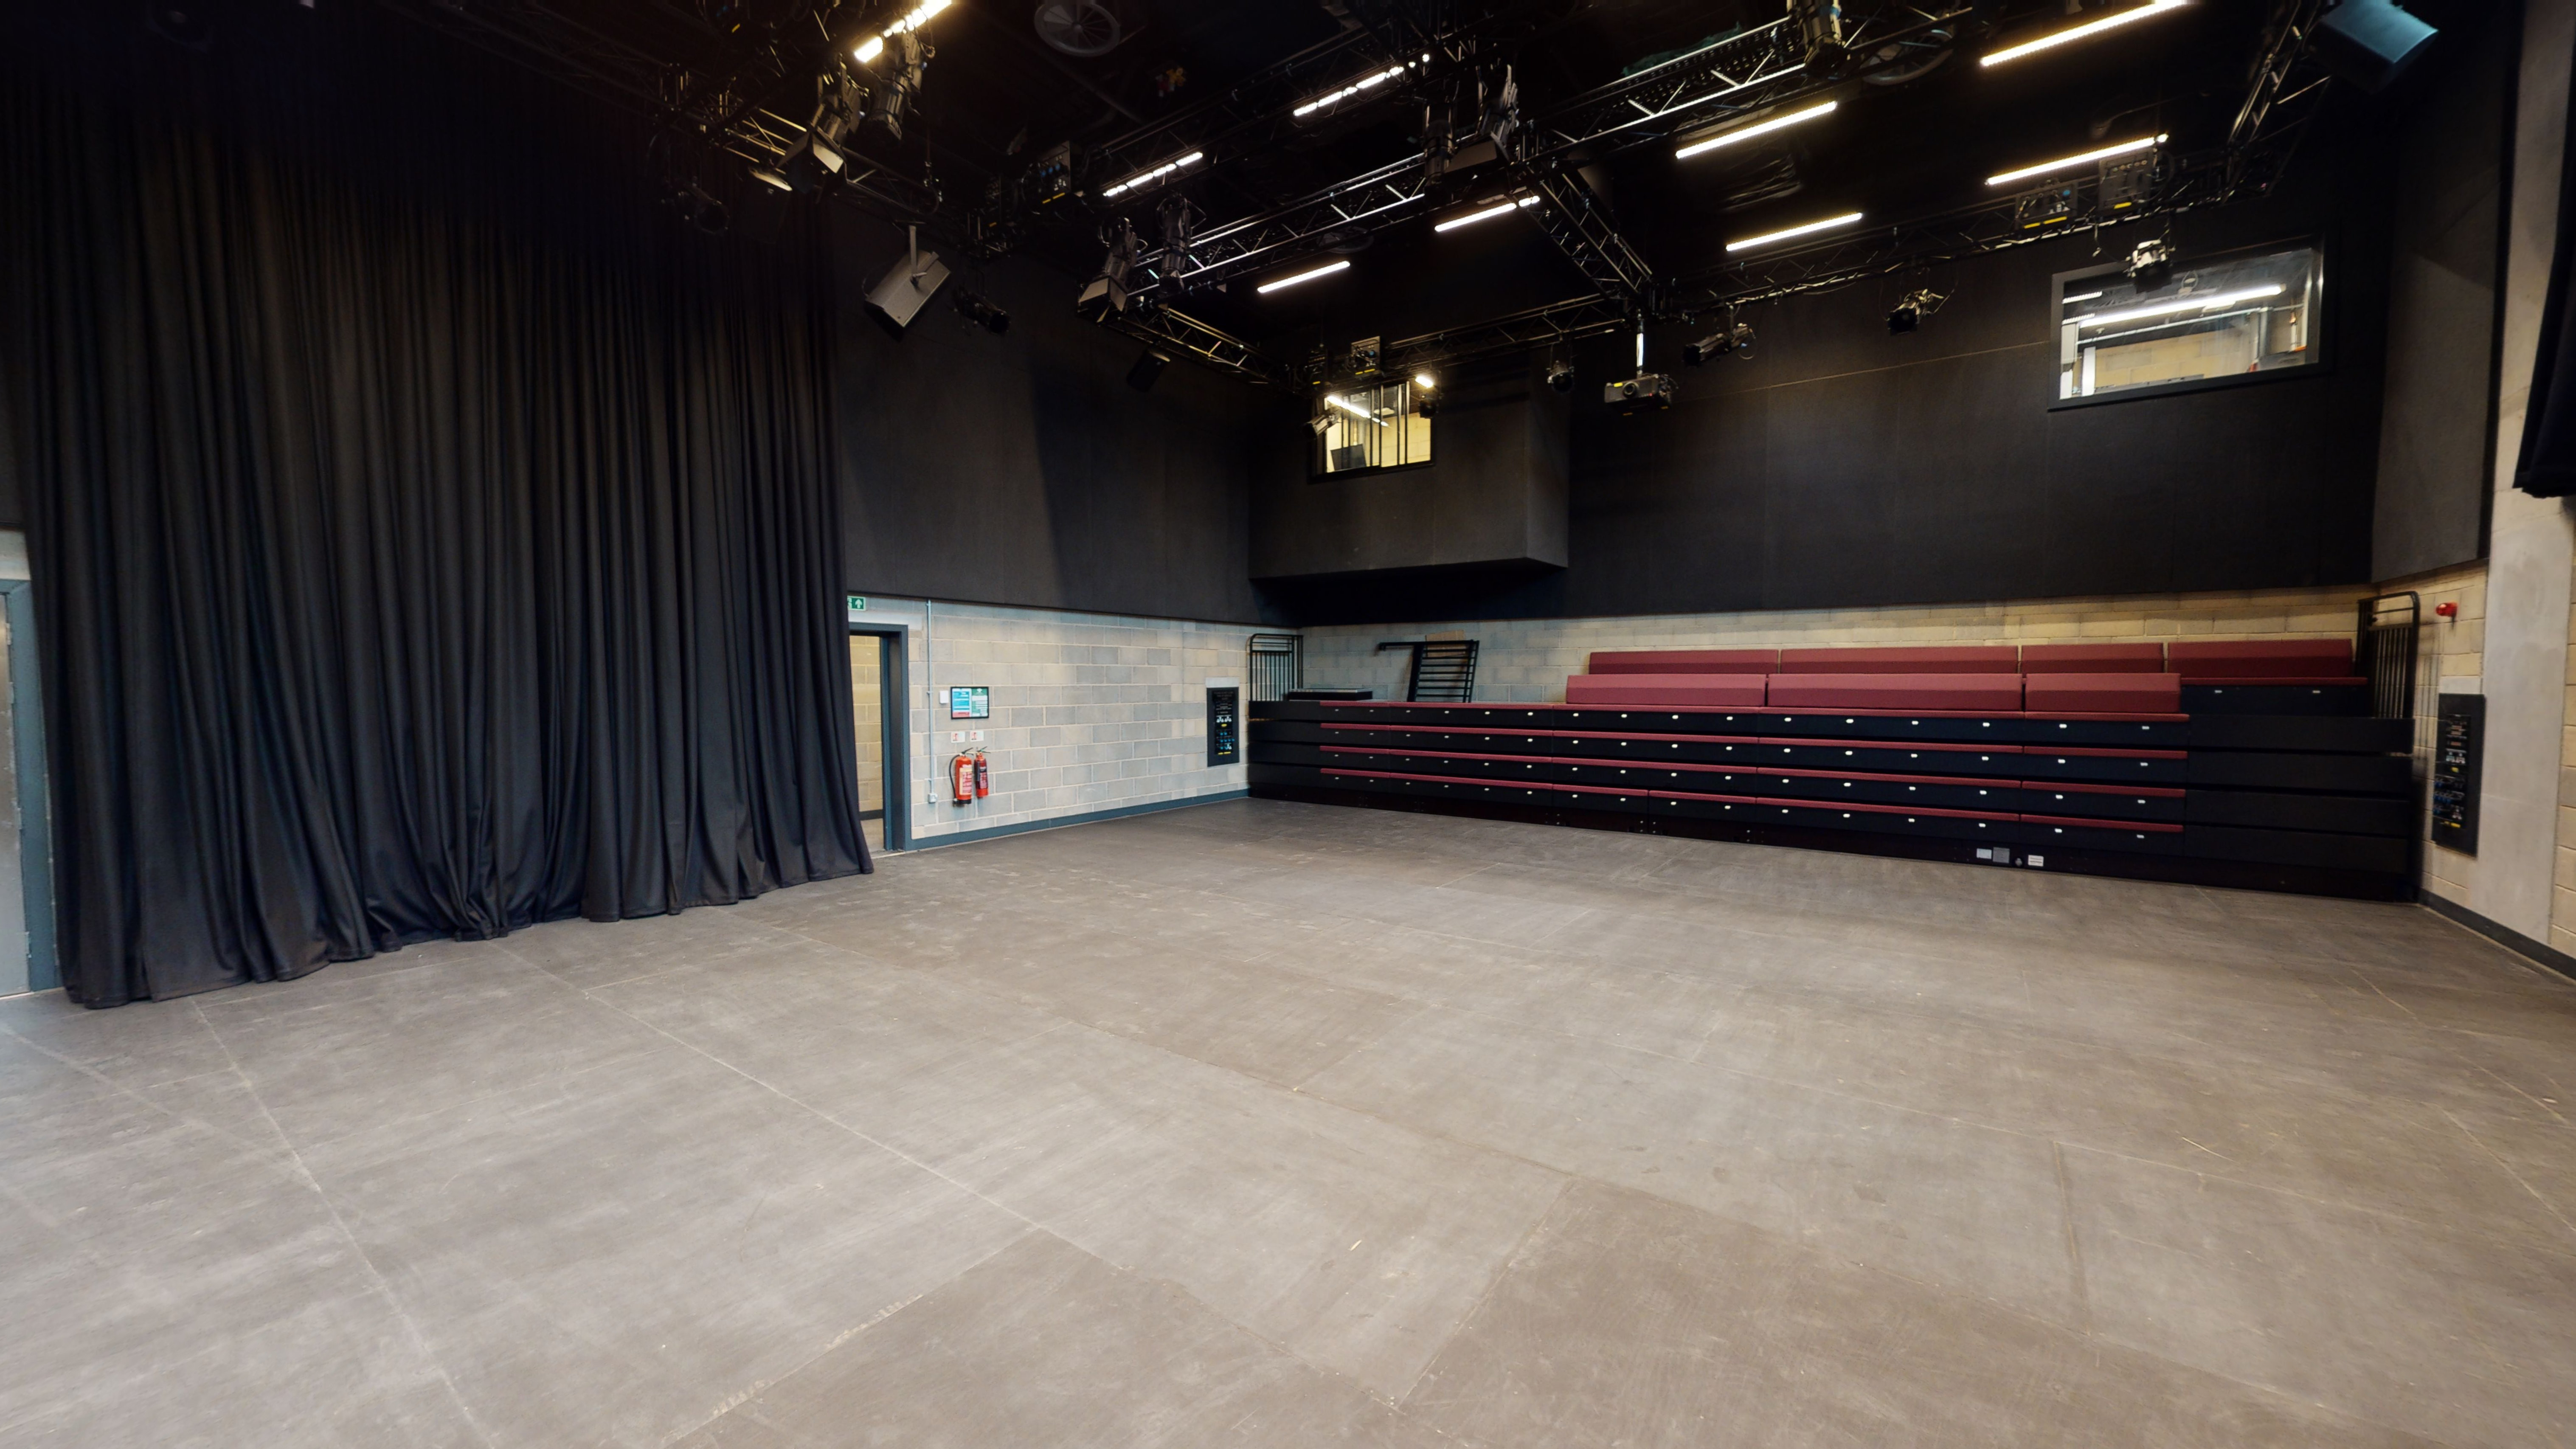 Medium sized theatre space with a bank of seating at the back.